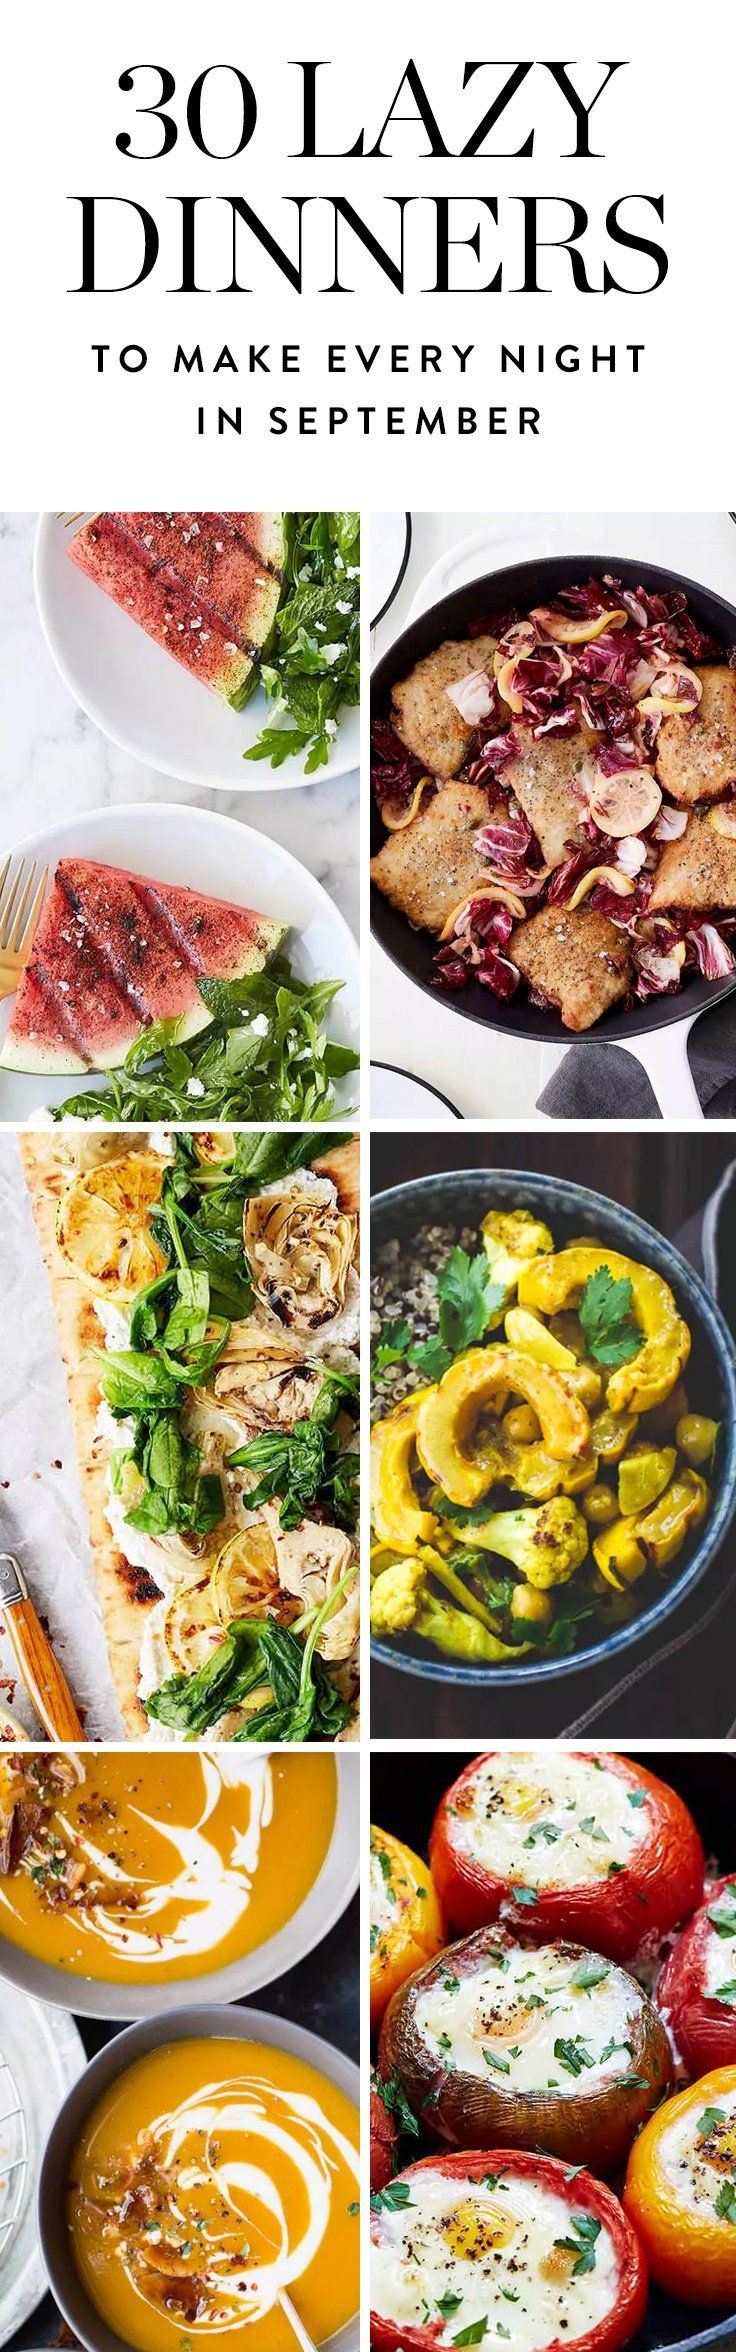 Here are 30 ridiculously easy fall dinner recipes to make every day this month ...because we care.